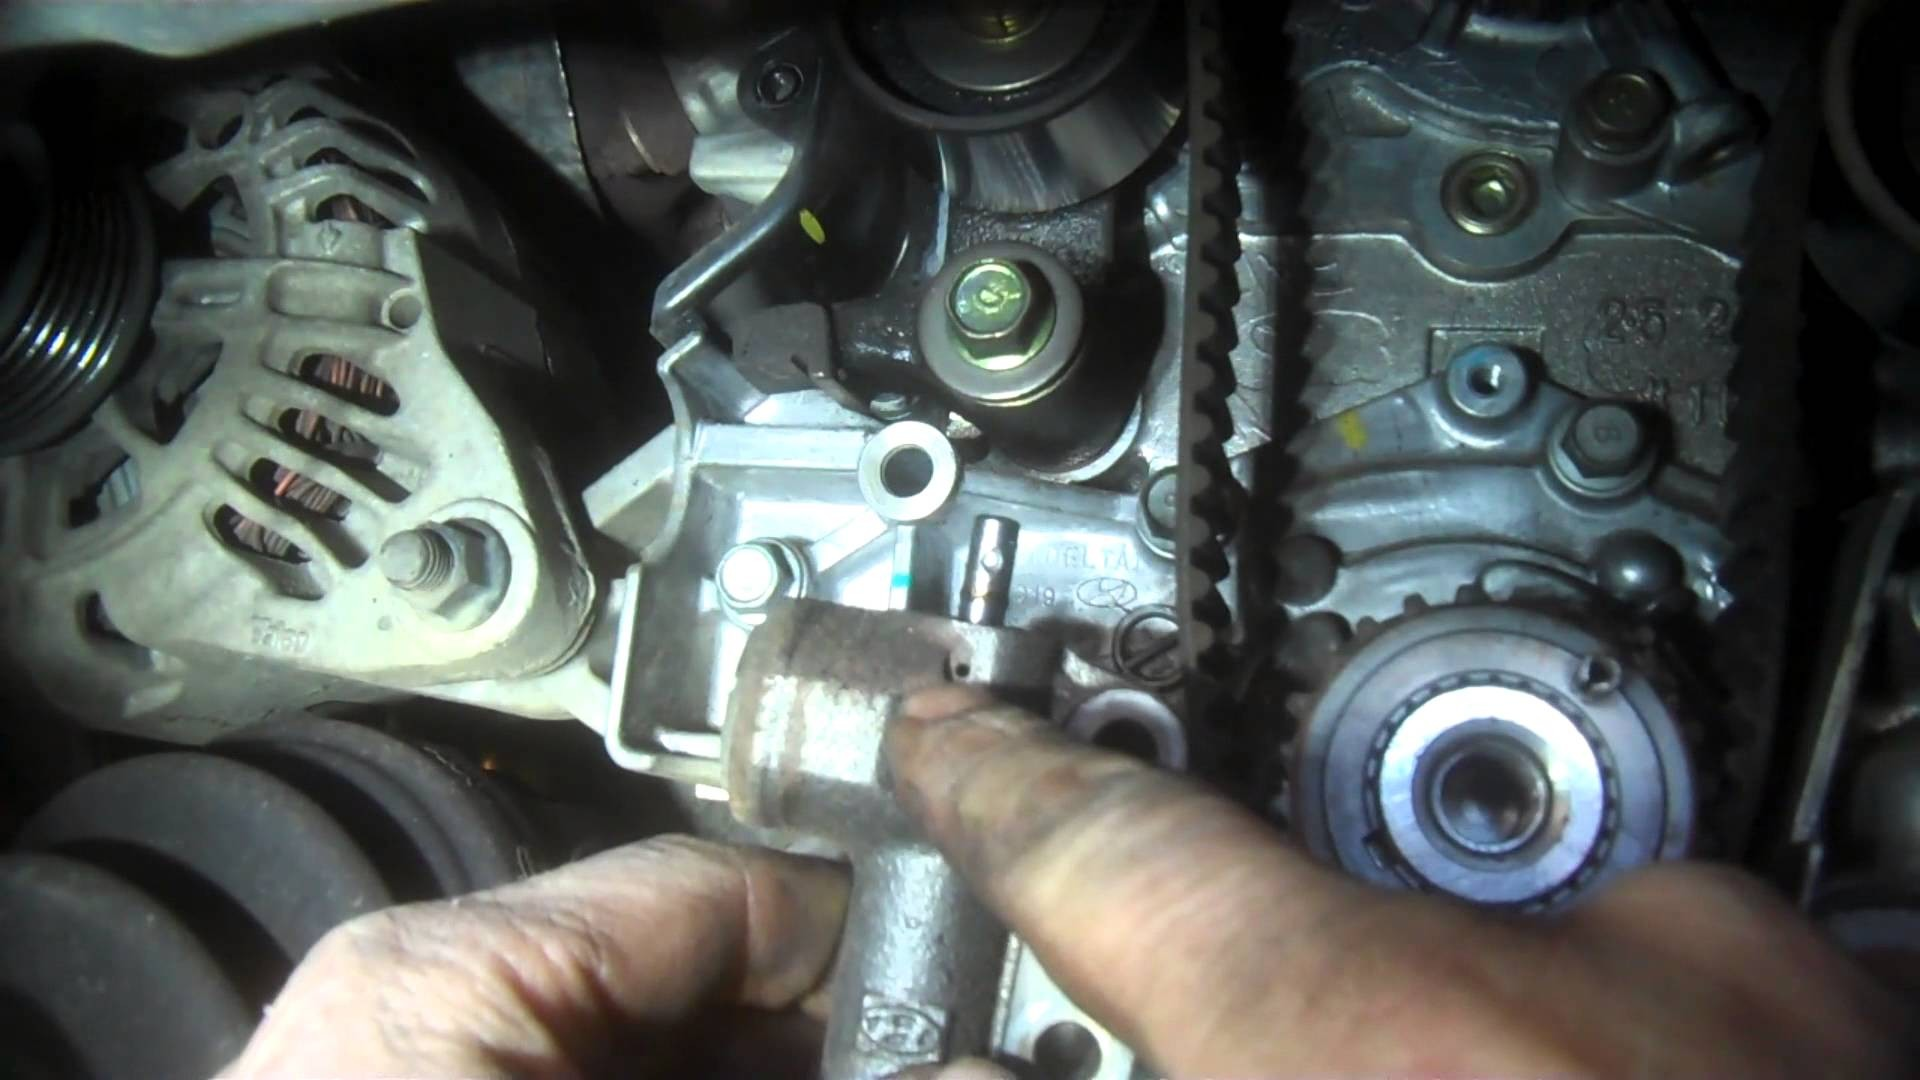 Hyundai Sonata Engine Diagram Timing Belt Replacement Hyundai Sonata L V Water Pump Of Hyundai Sonata Engine Diagram